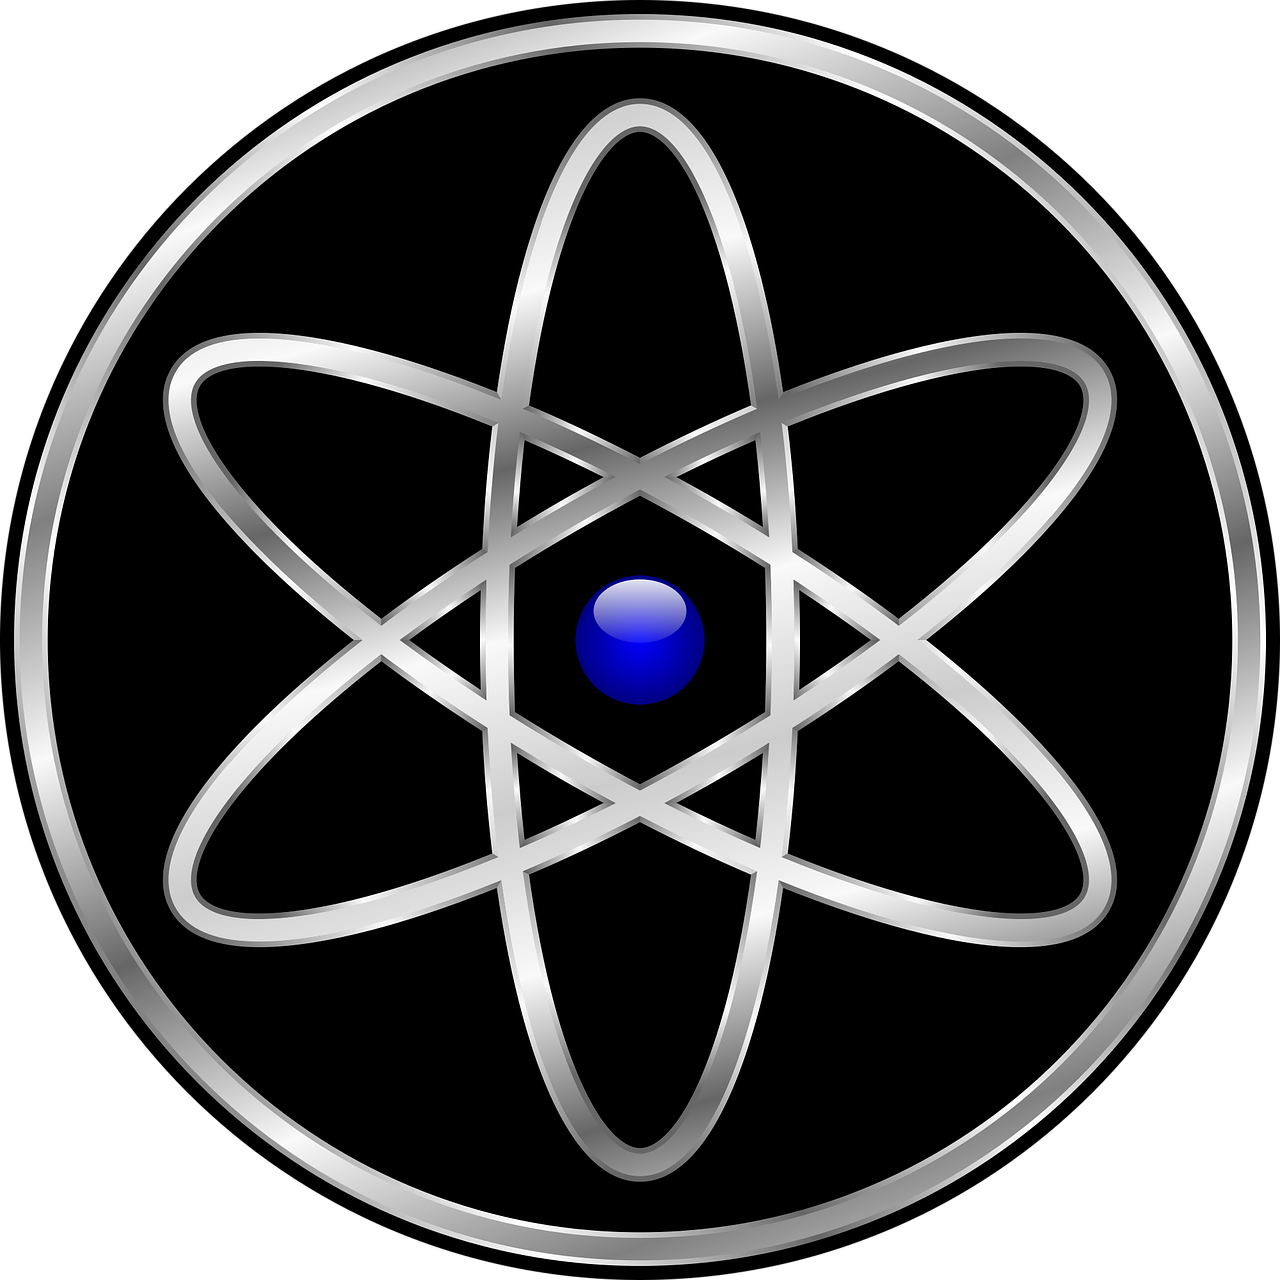 Transparent science sign. Symbol education technology free